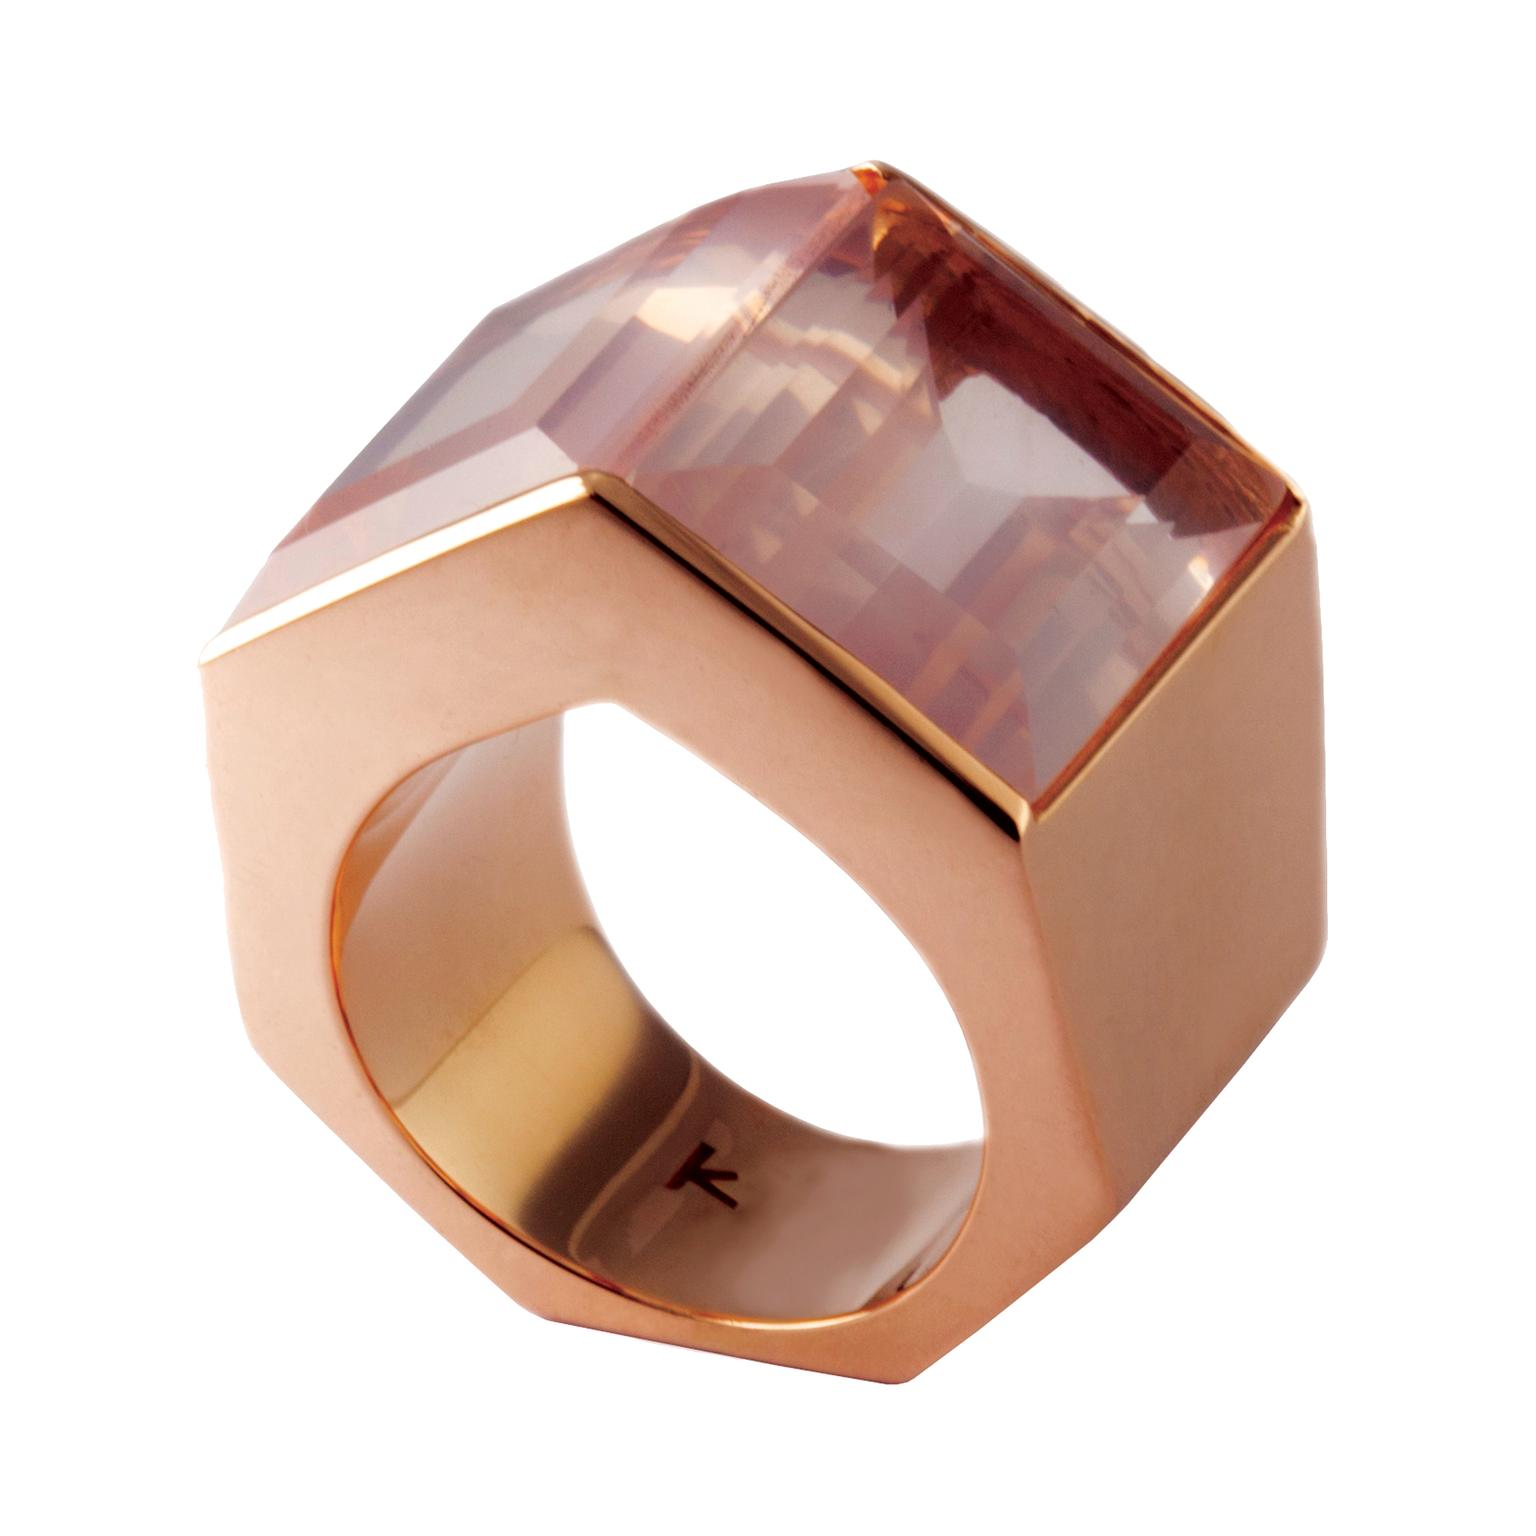 Kattri Tall Polygon rose gold and rose quartz ring